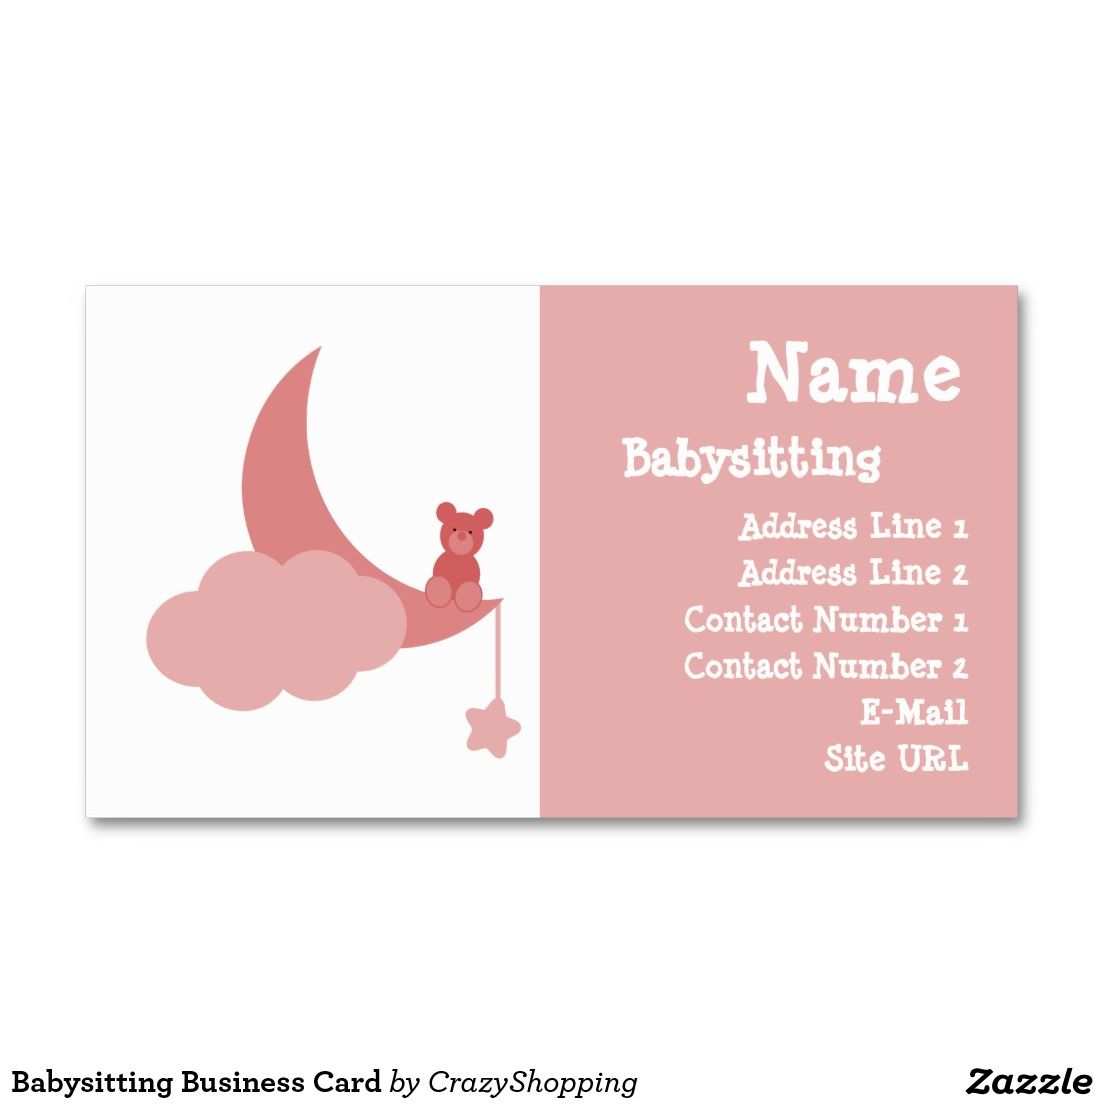 Babysitting Business Card | My Zazzle products | Pinterest ...